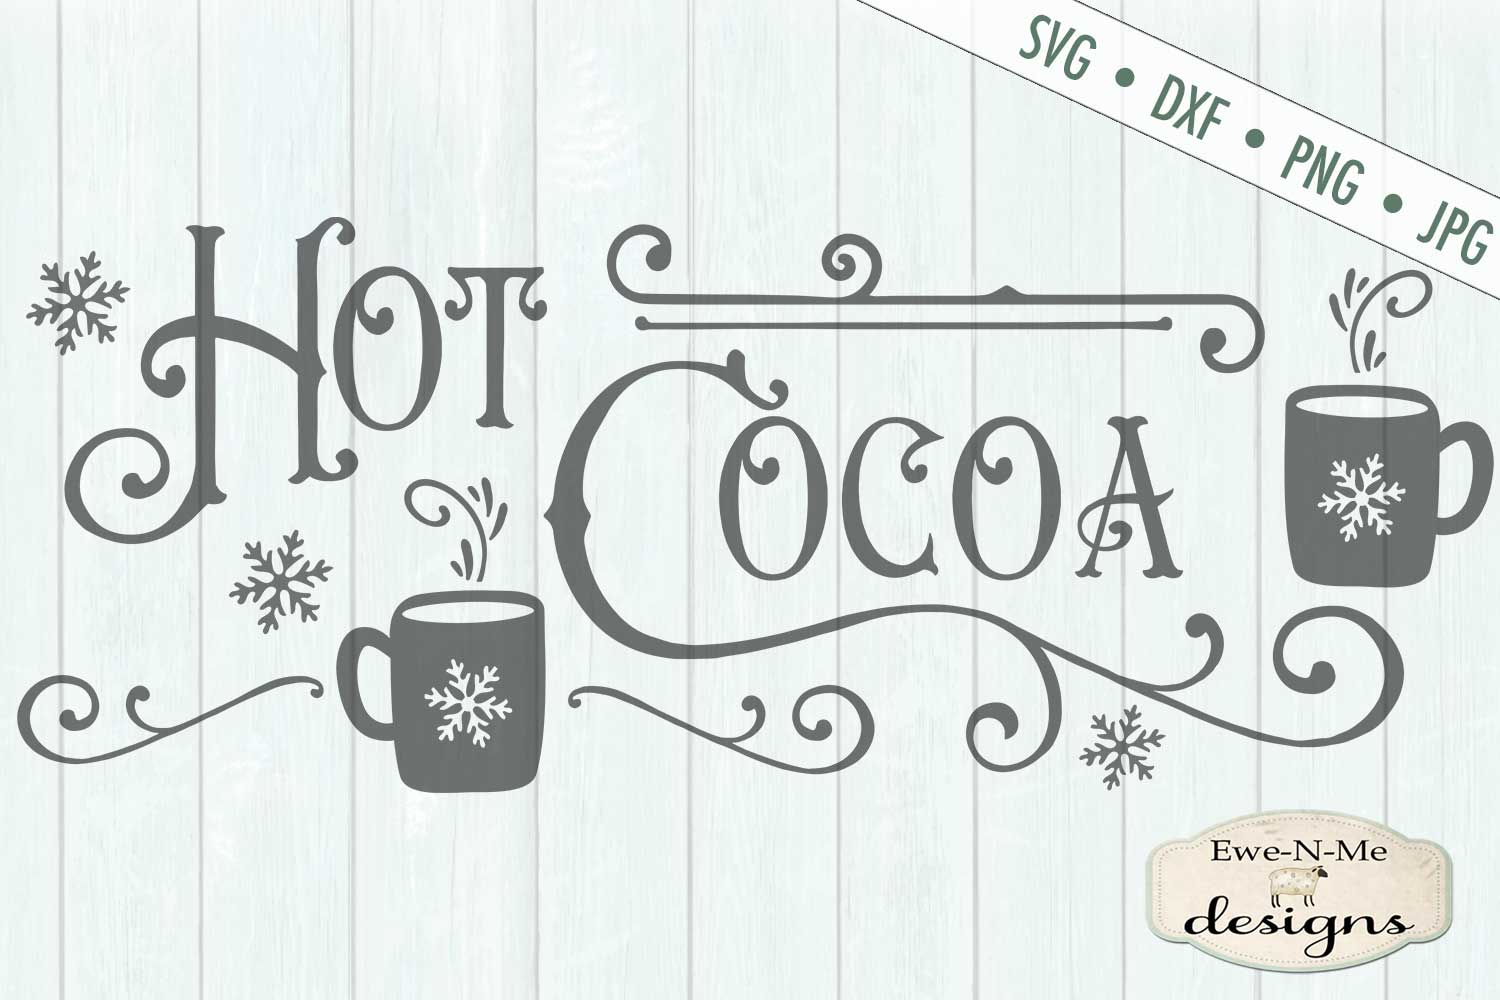 Hot Cocoa - Cocoa Mugs - Winter Christmas - SVG DXF Files example image 2